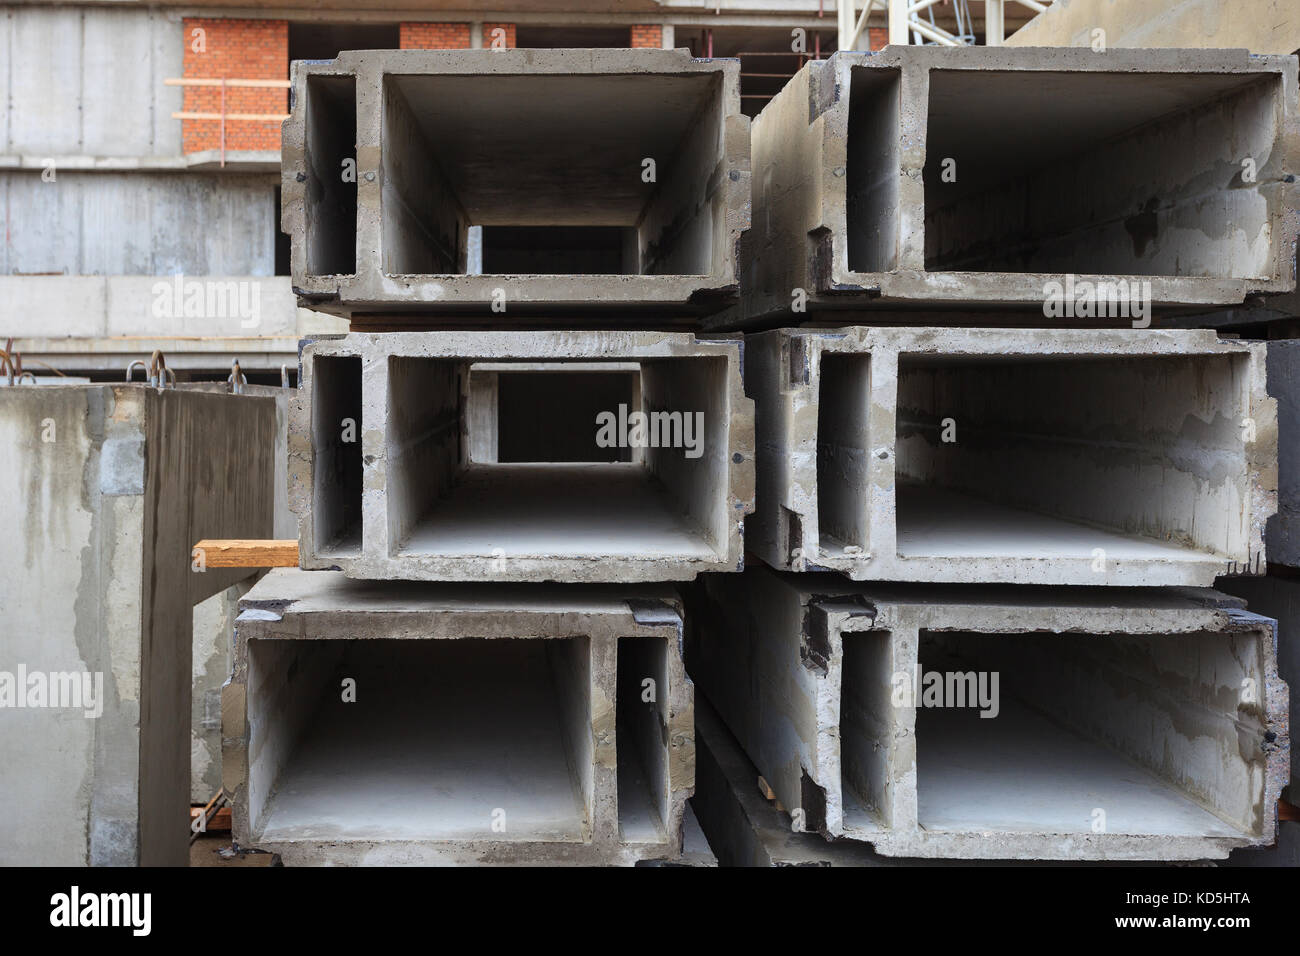 Storage of building materials Stock Photo